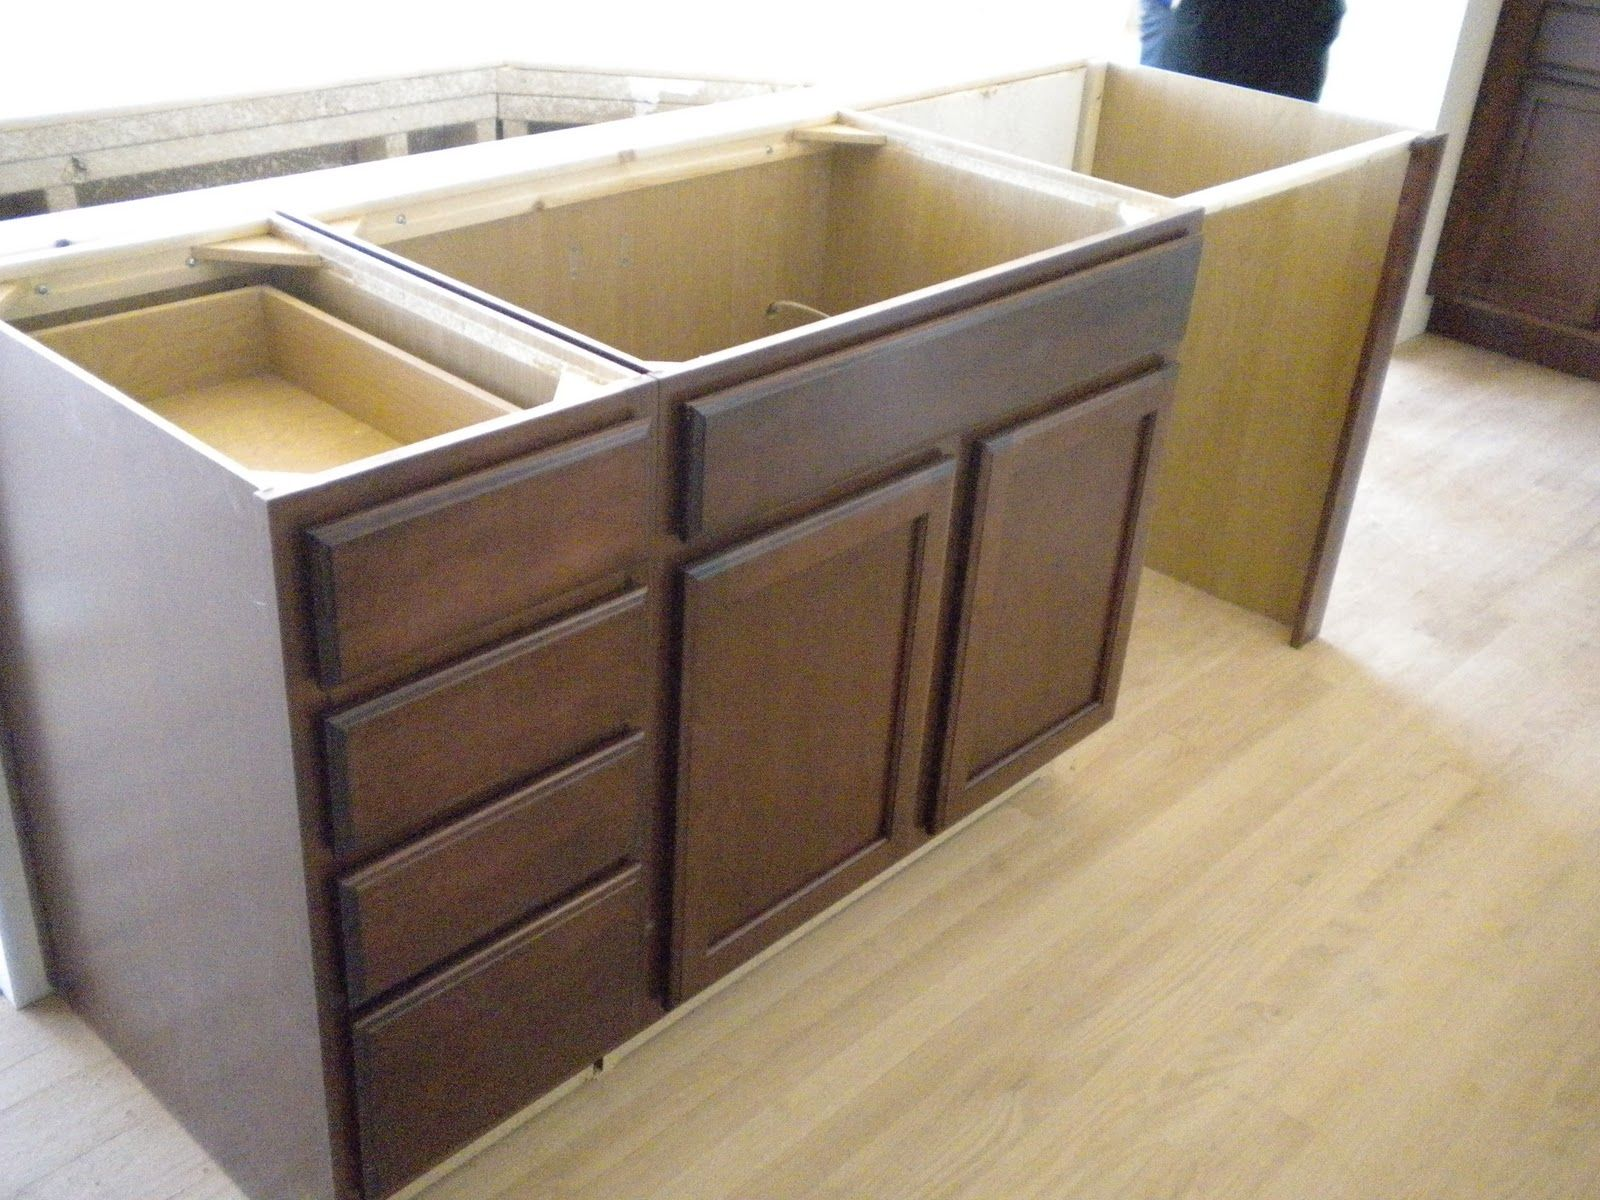 Kitchen Island With Sink And Dishwasher This Is A Picture